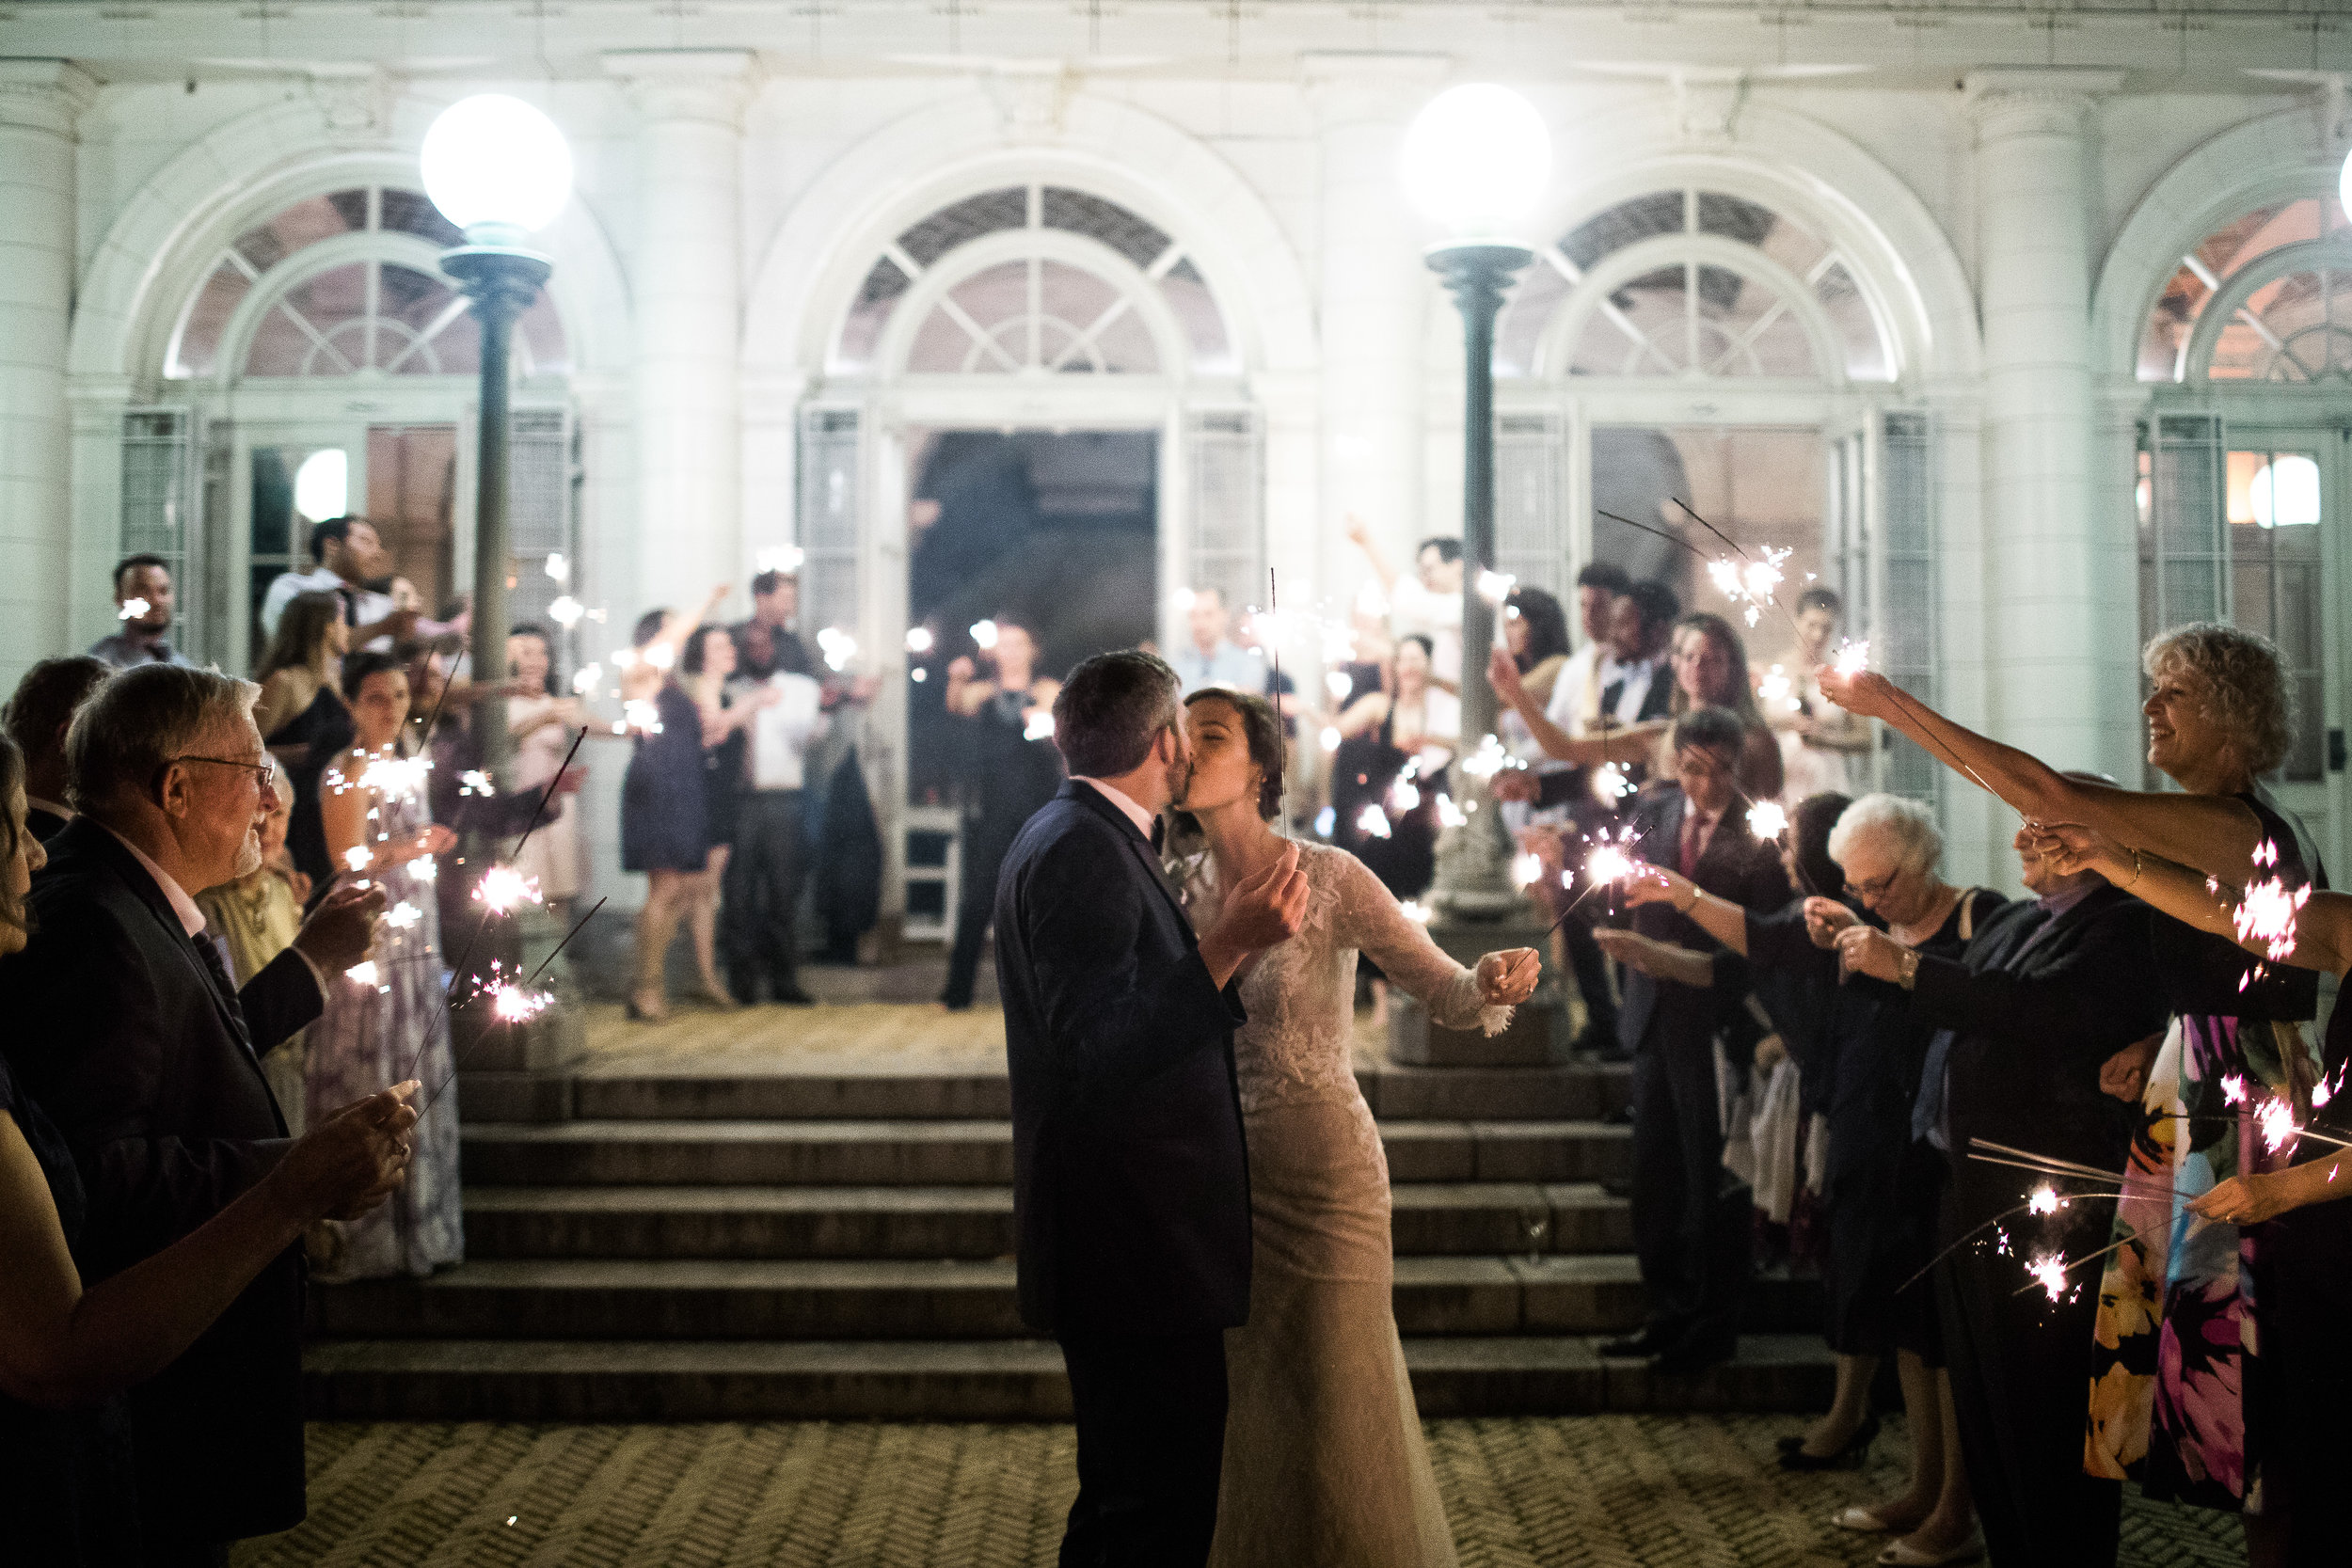 Nate Buffaloe Laura Snavely Rusty Wright Brooklyn Wedding Photographer